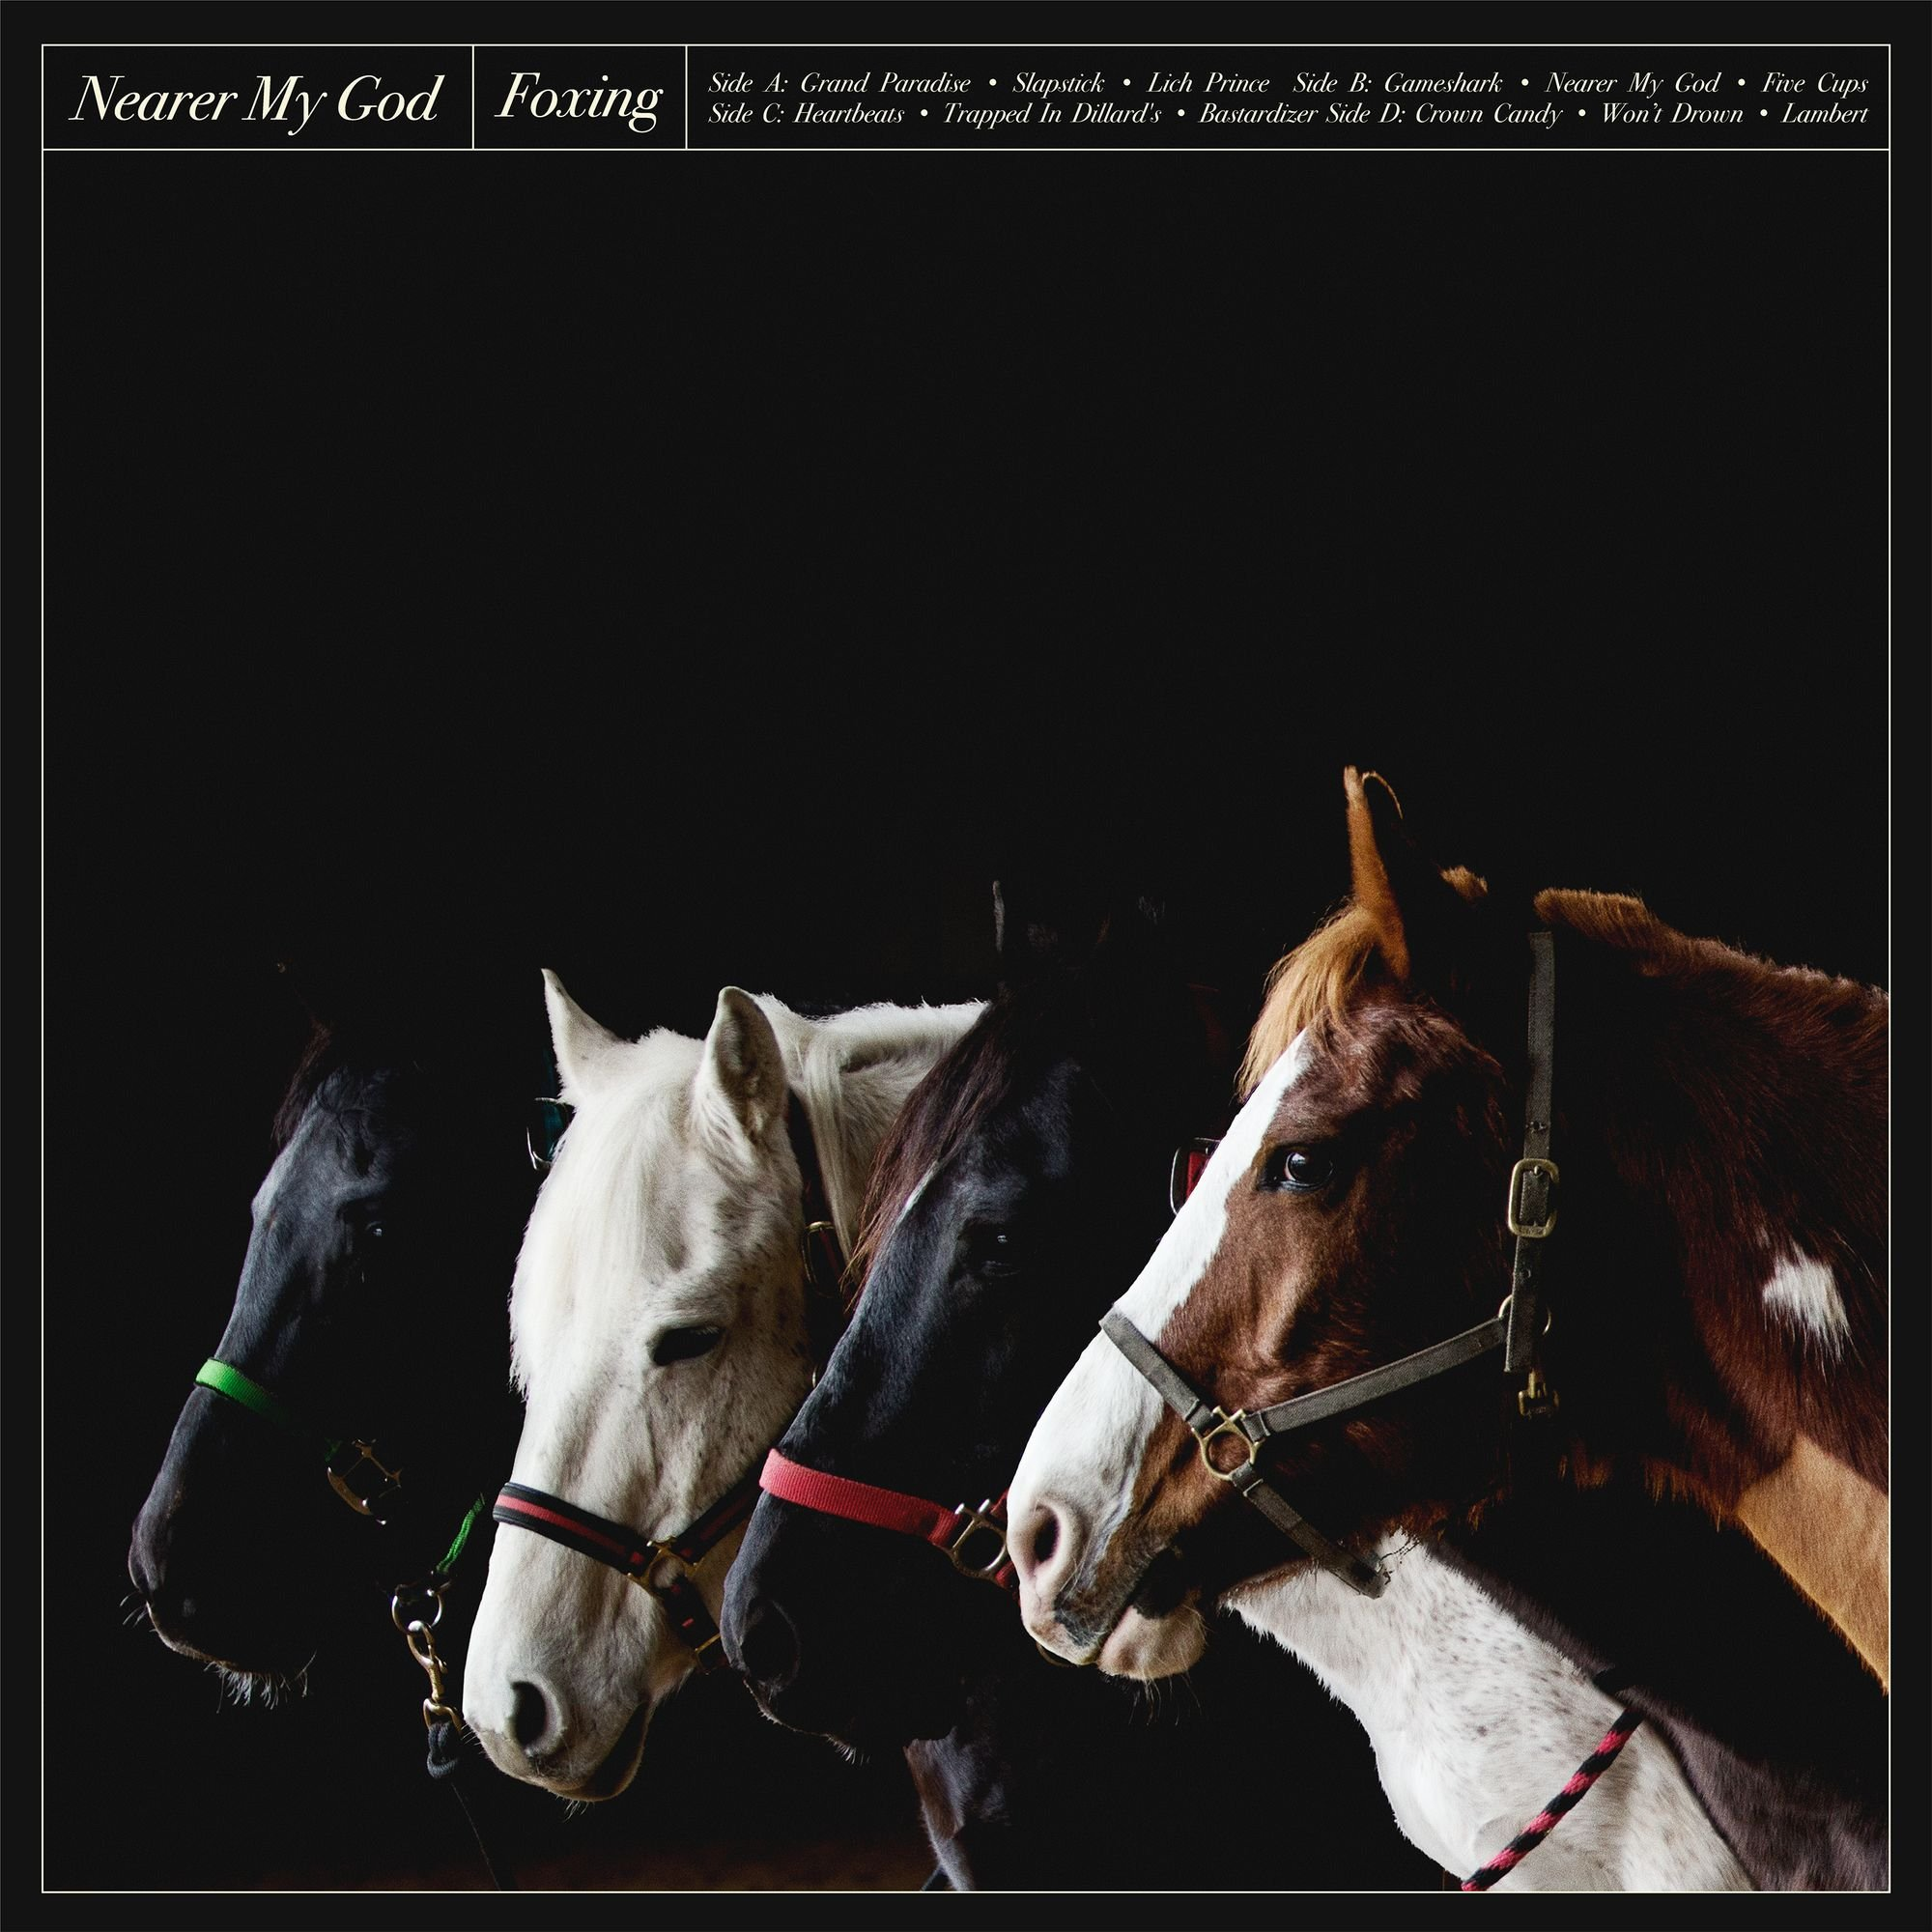 Cassette : Foxing - Nearer My God (Cassette)